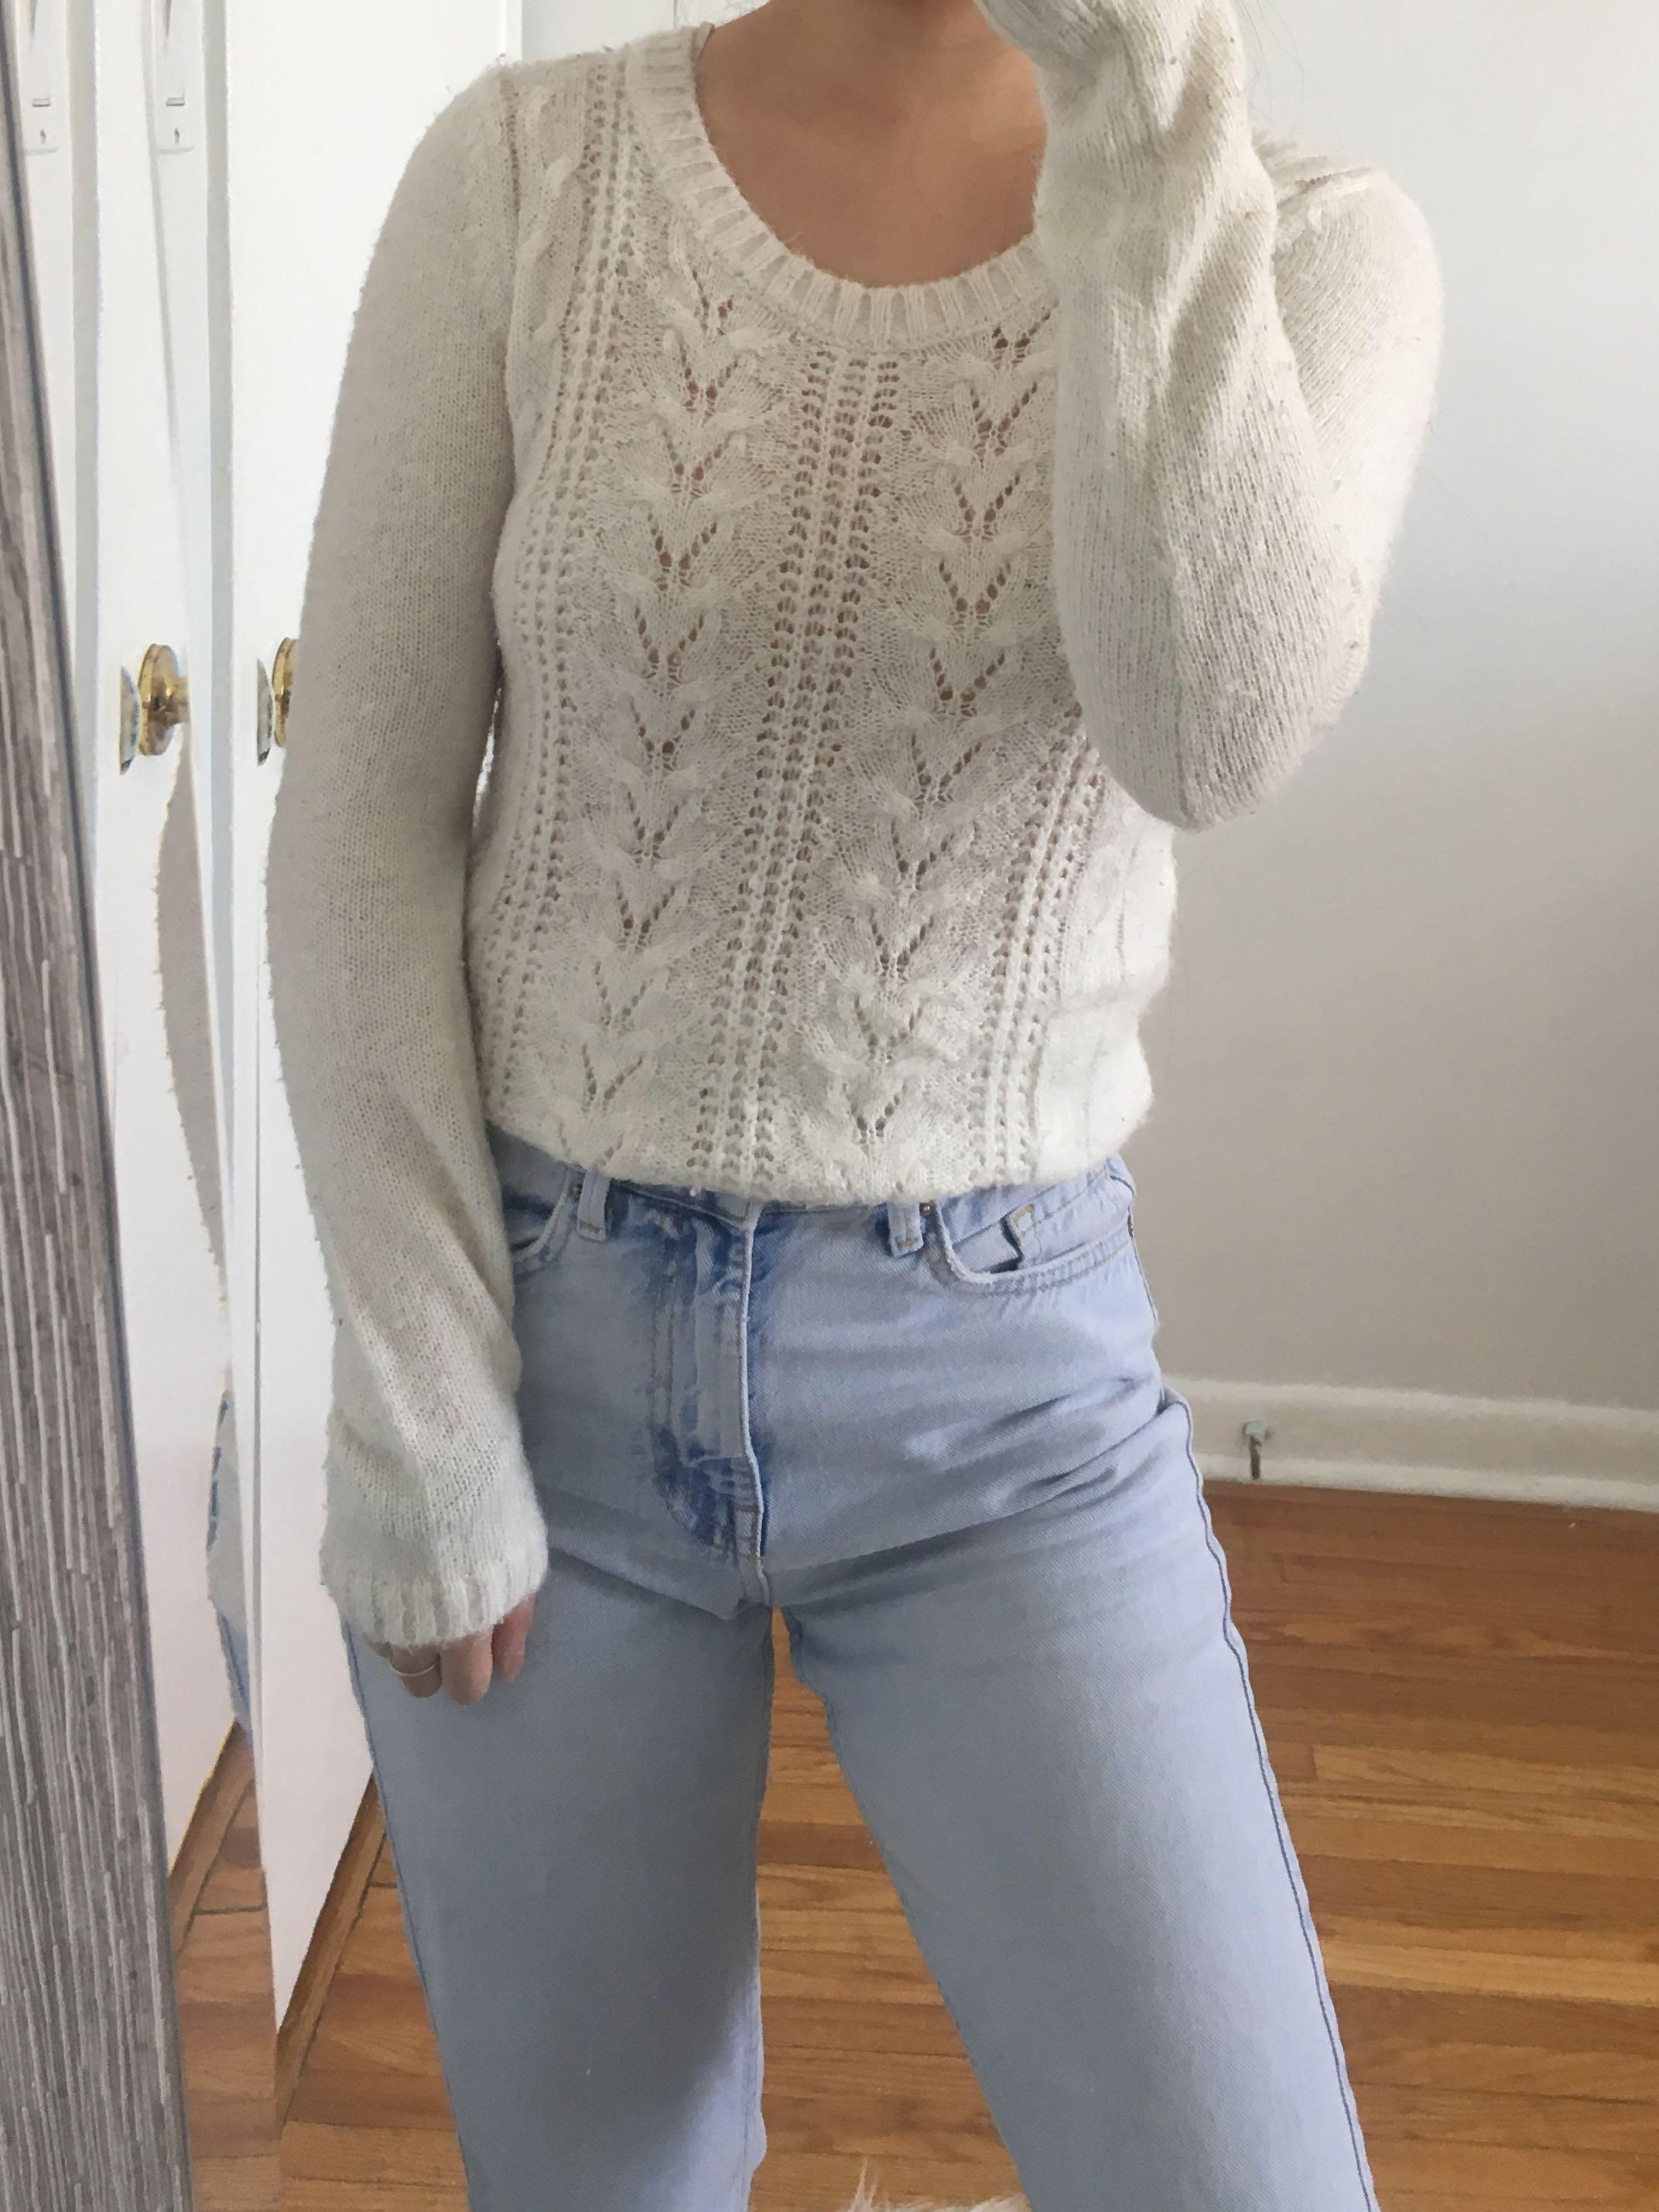 F21 Knit Sweatshirt